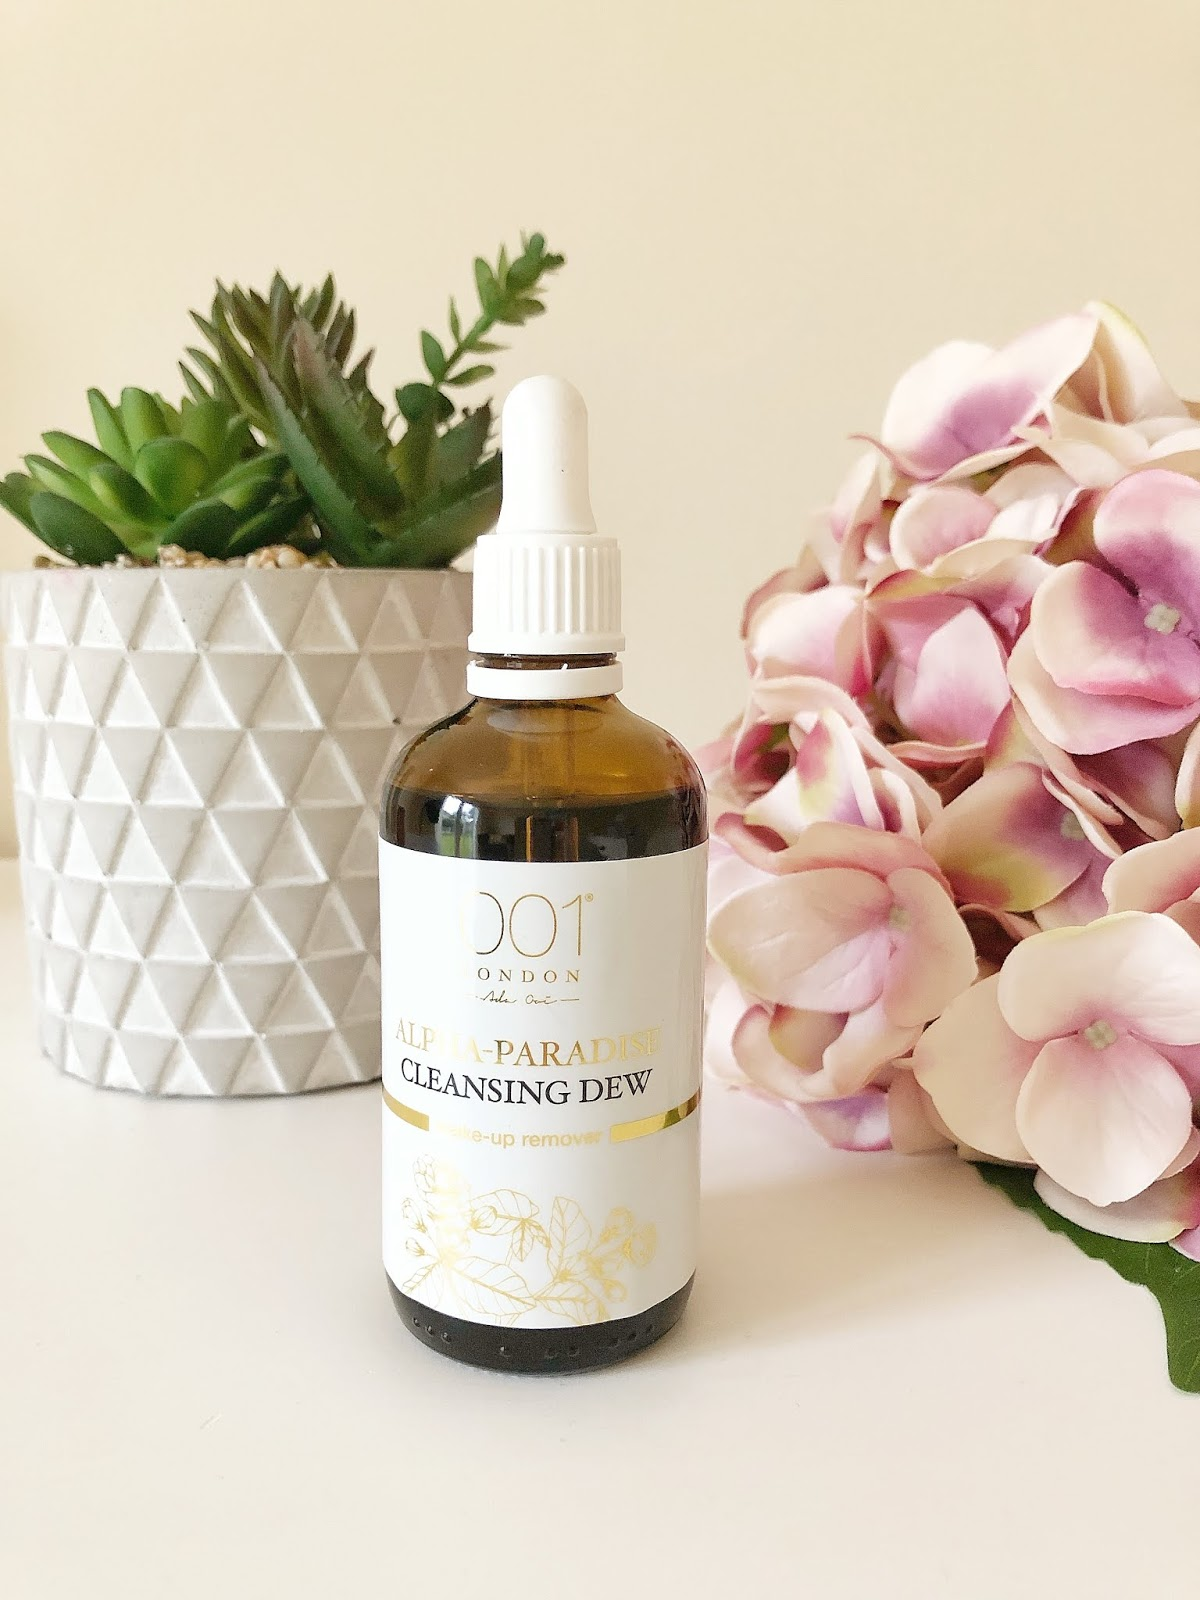 001 Skincare Alpha Paradise Cleansing Dew